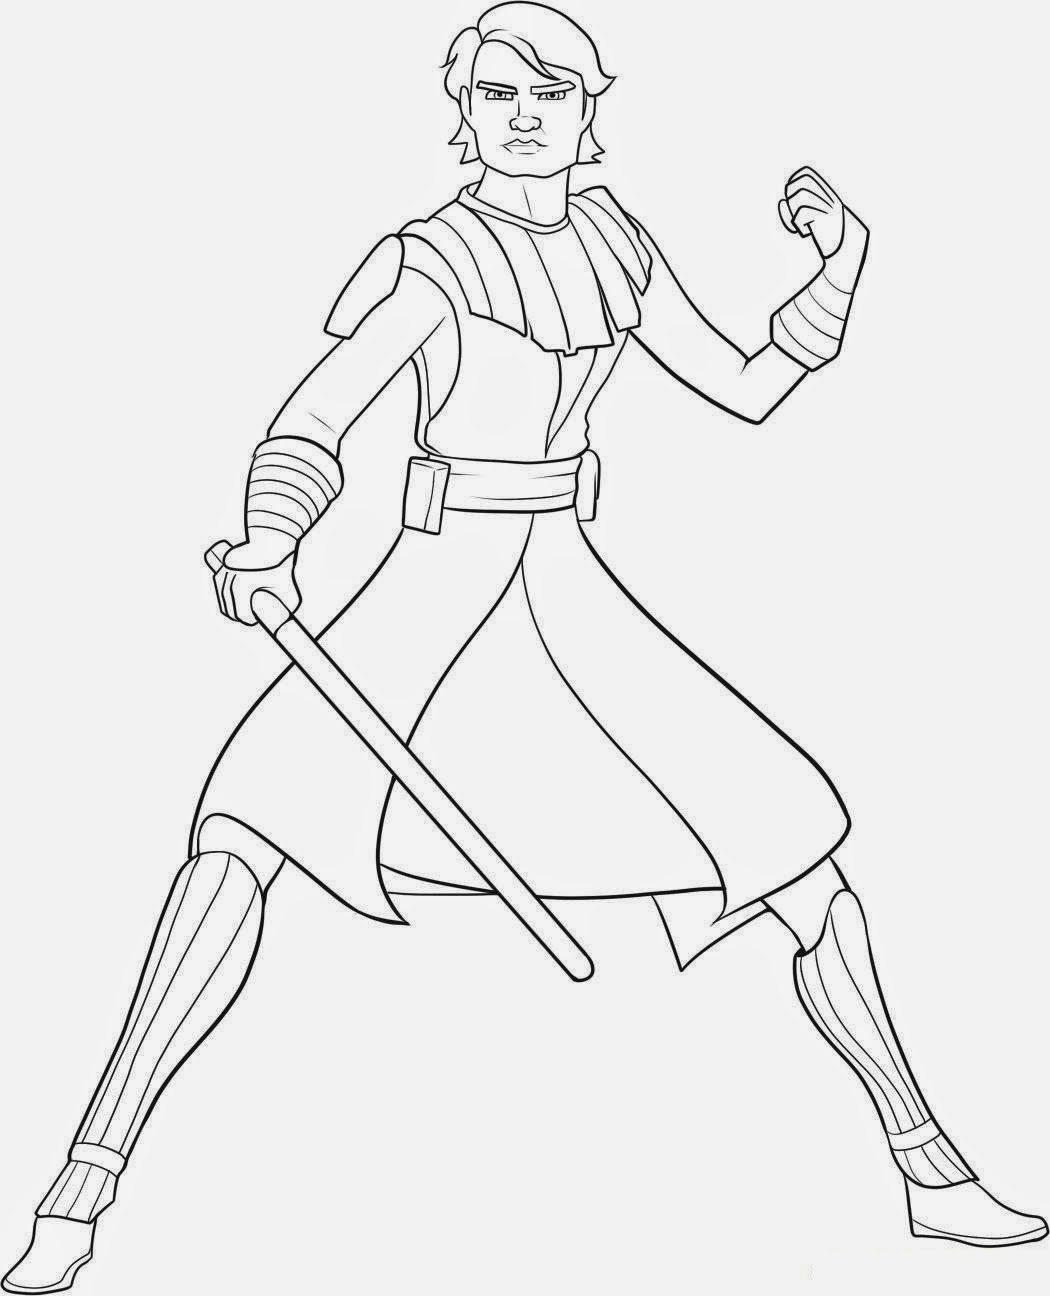 Free Star Wars Coloring Pages Anakin Skywalker for KidsAnakin Skywalker Coloring Pages